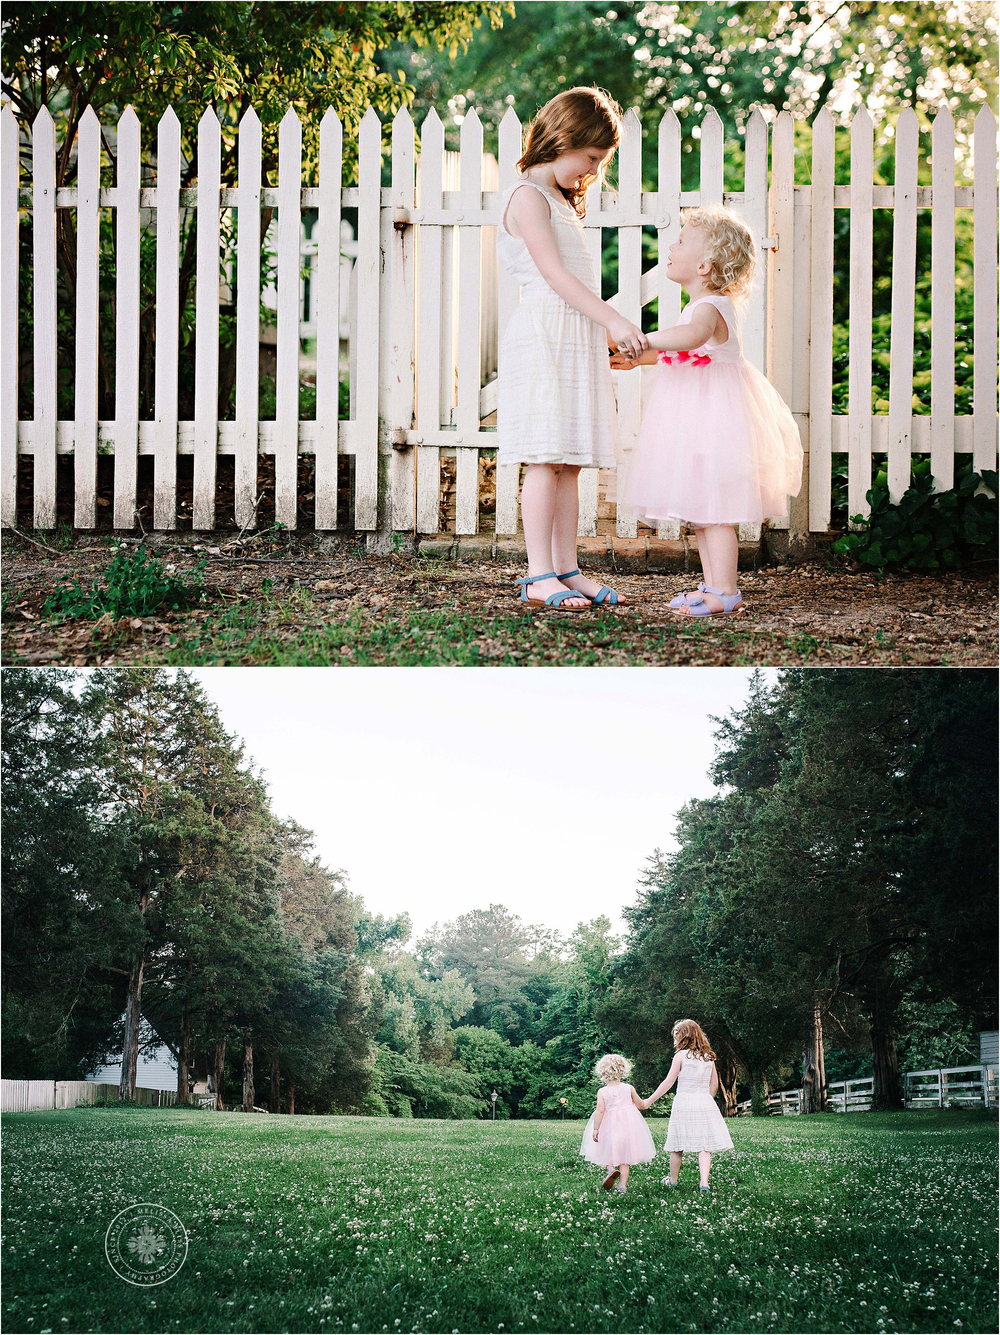 chesapeake-norfolk-virginia-beach-child-and-family-photographer-melissa-bliss-photography